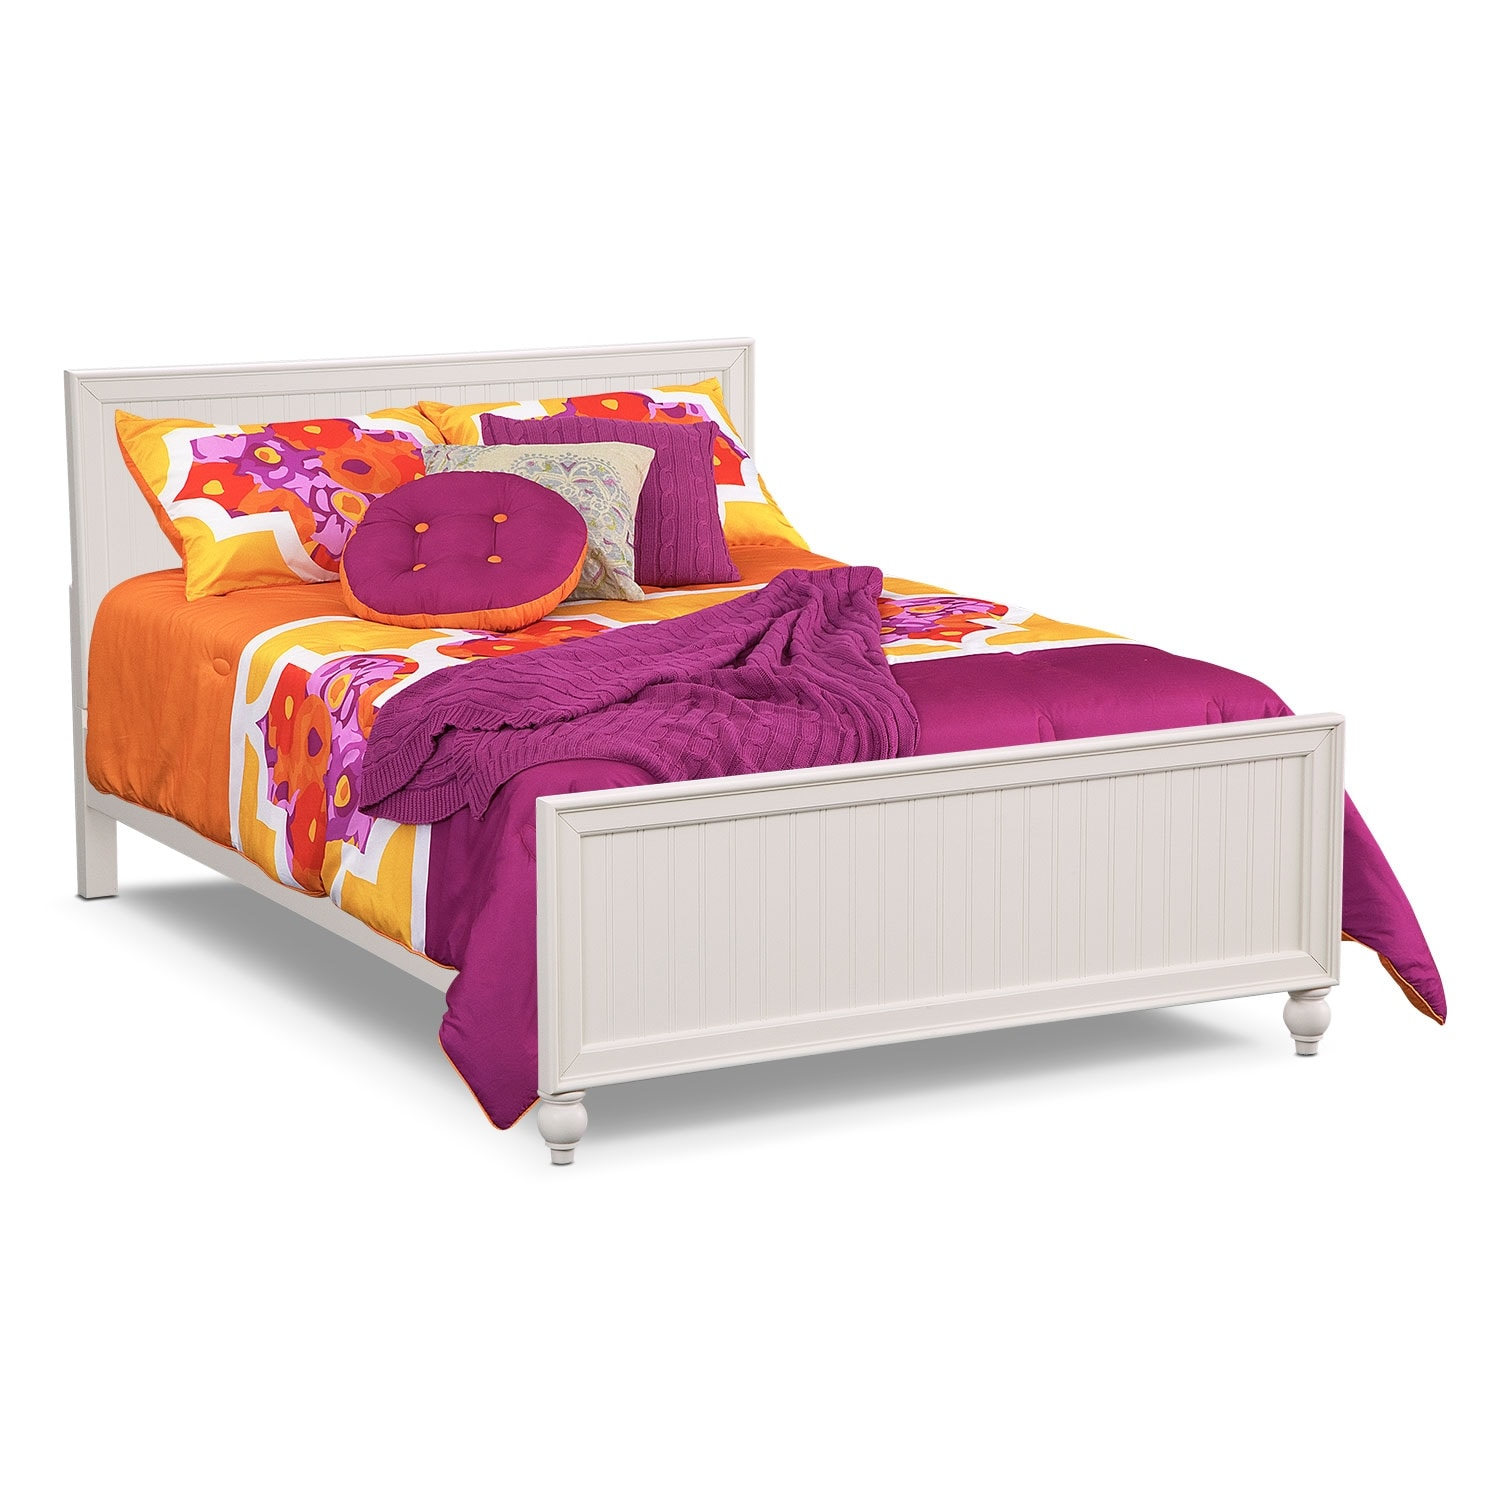 Colorworks Youth Full Bed - White